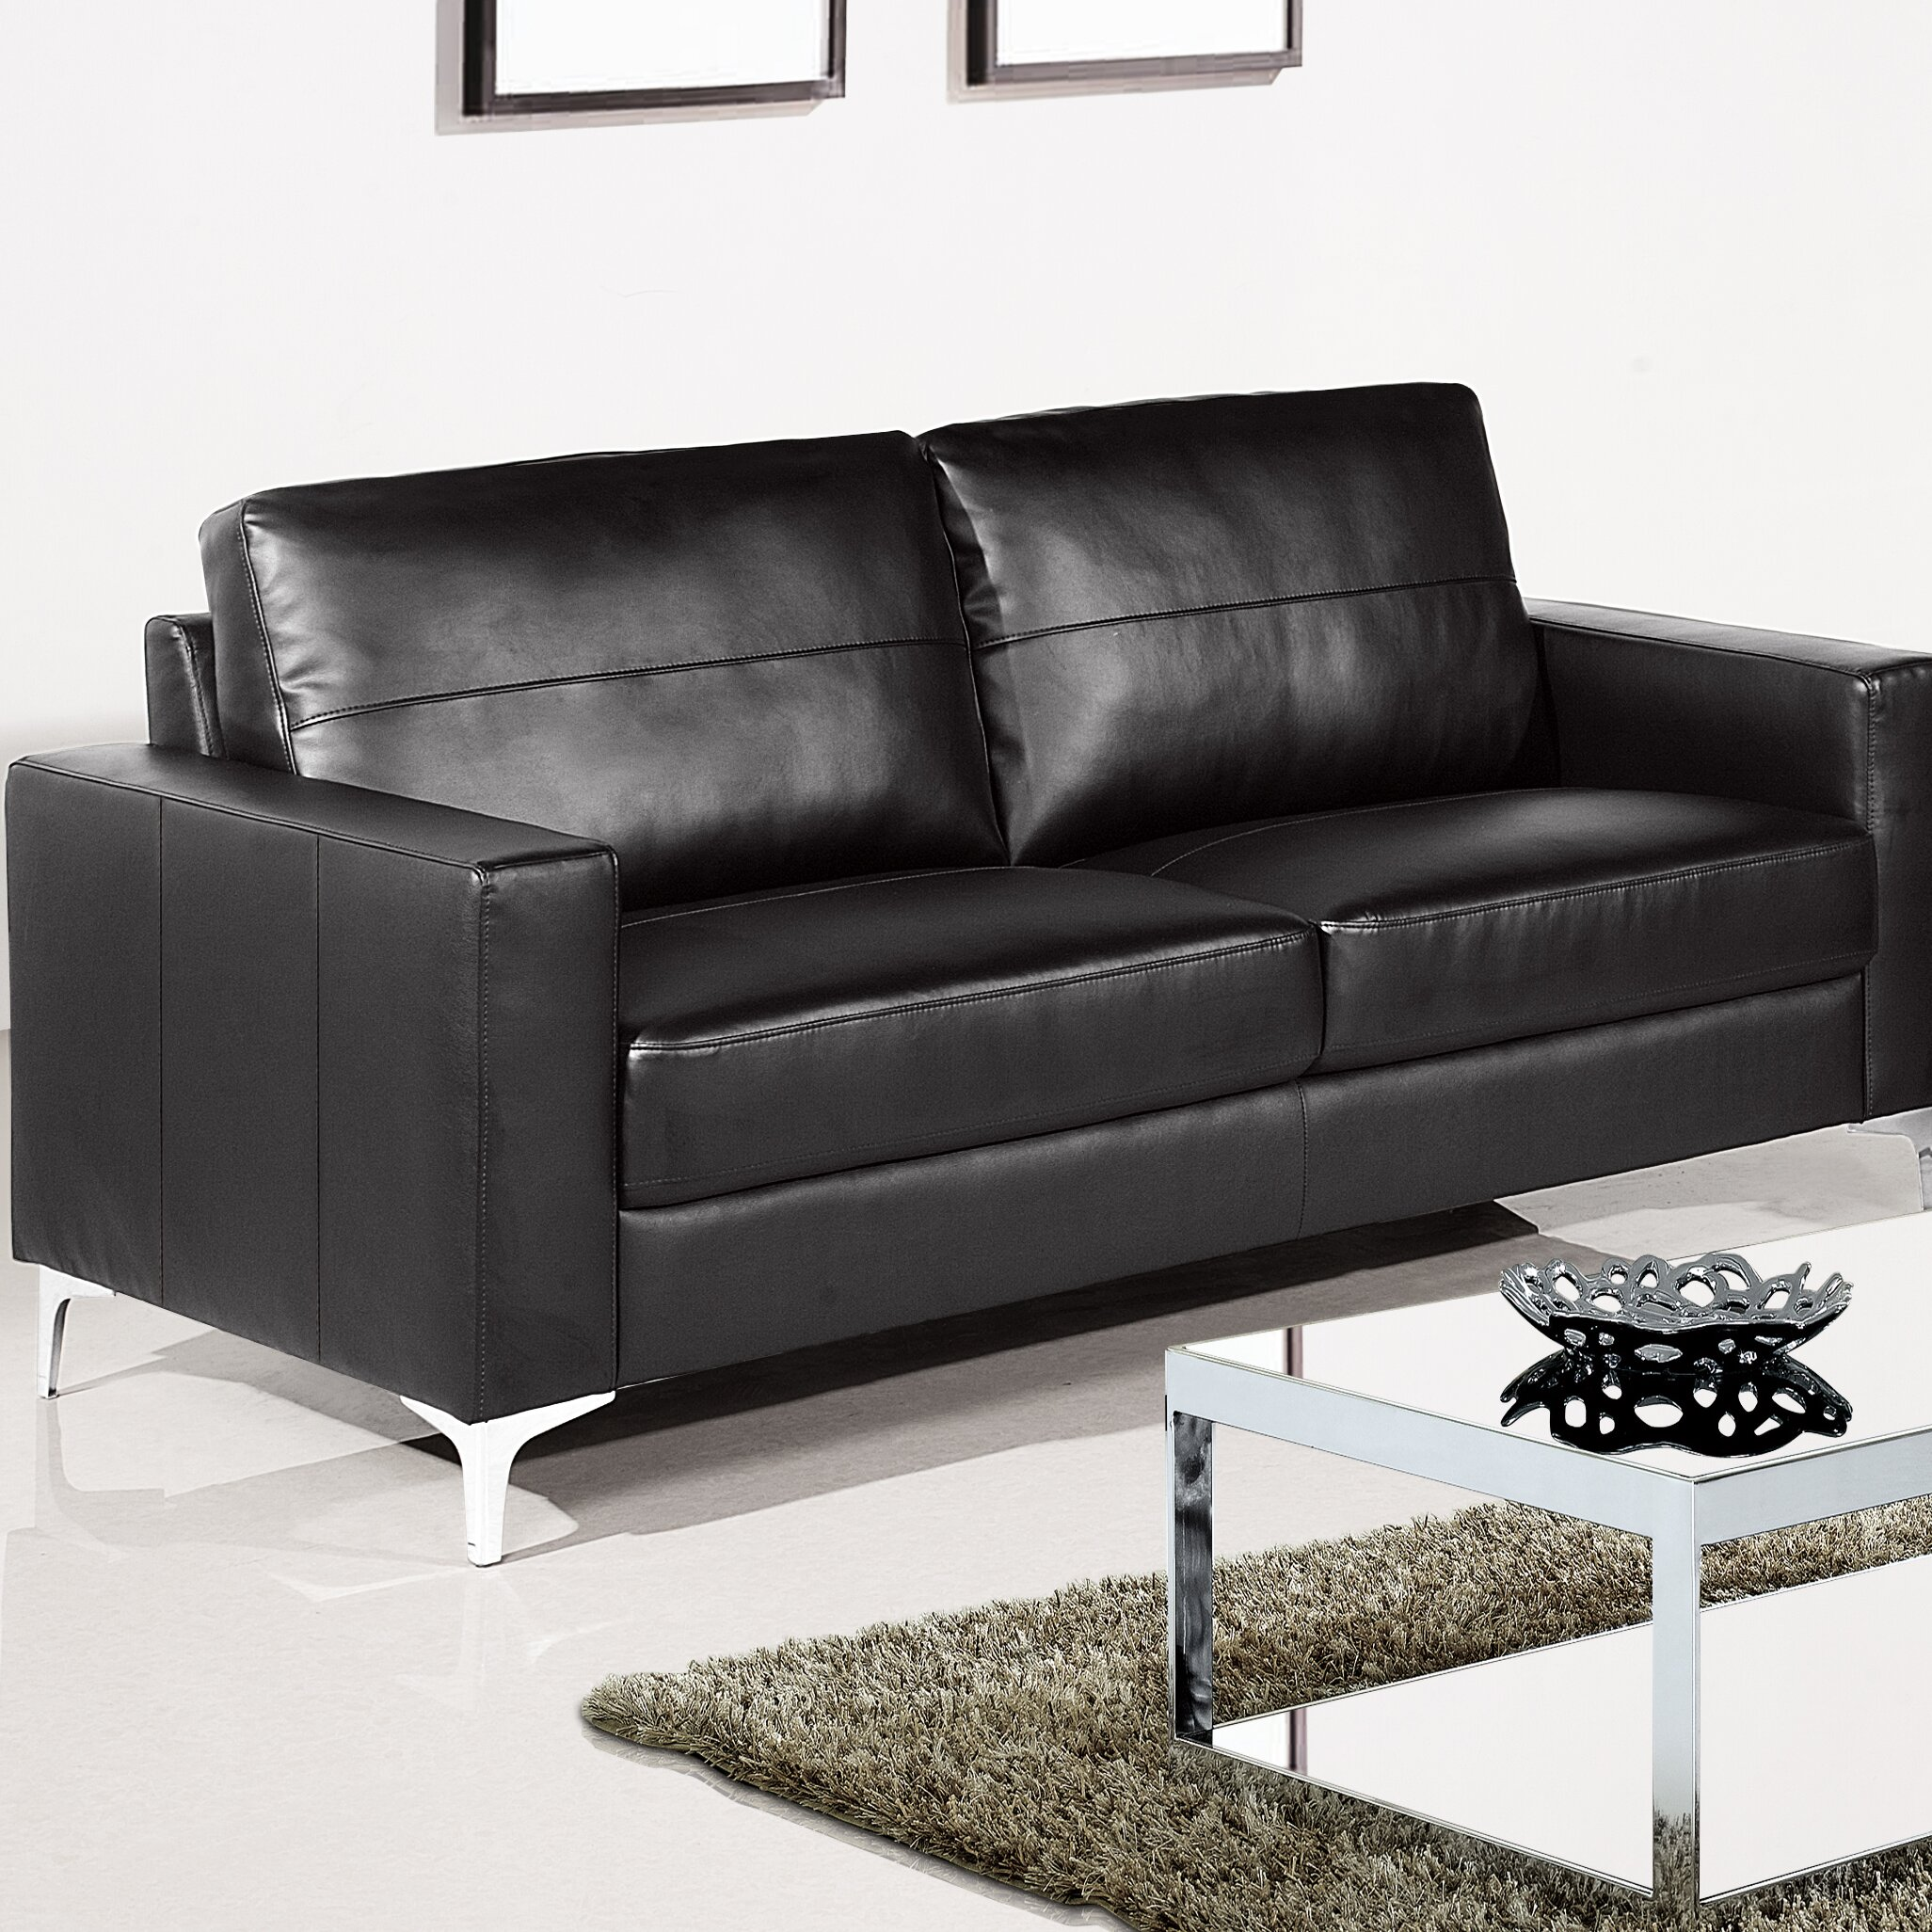 rose bay furniture tuscany 3 seater sofa reviews. Black Bedroom Furniture Sets. Home Design Ideas